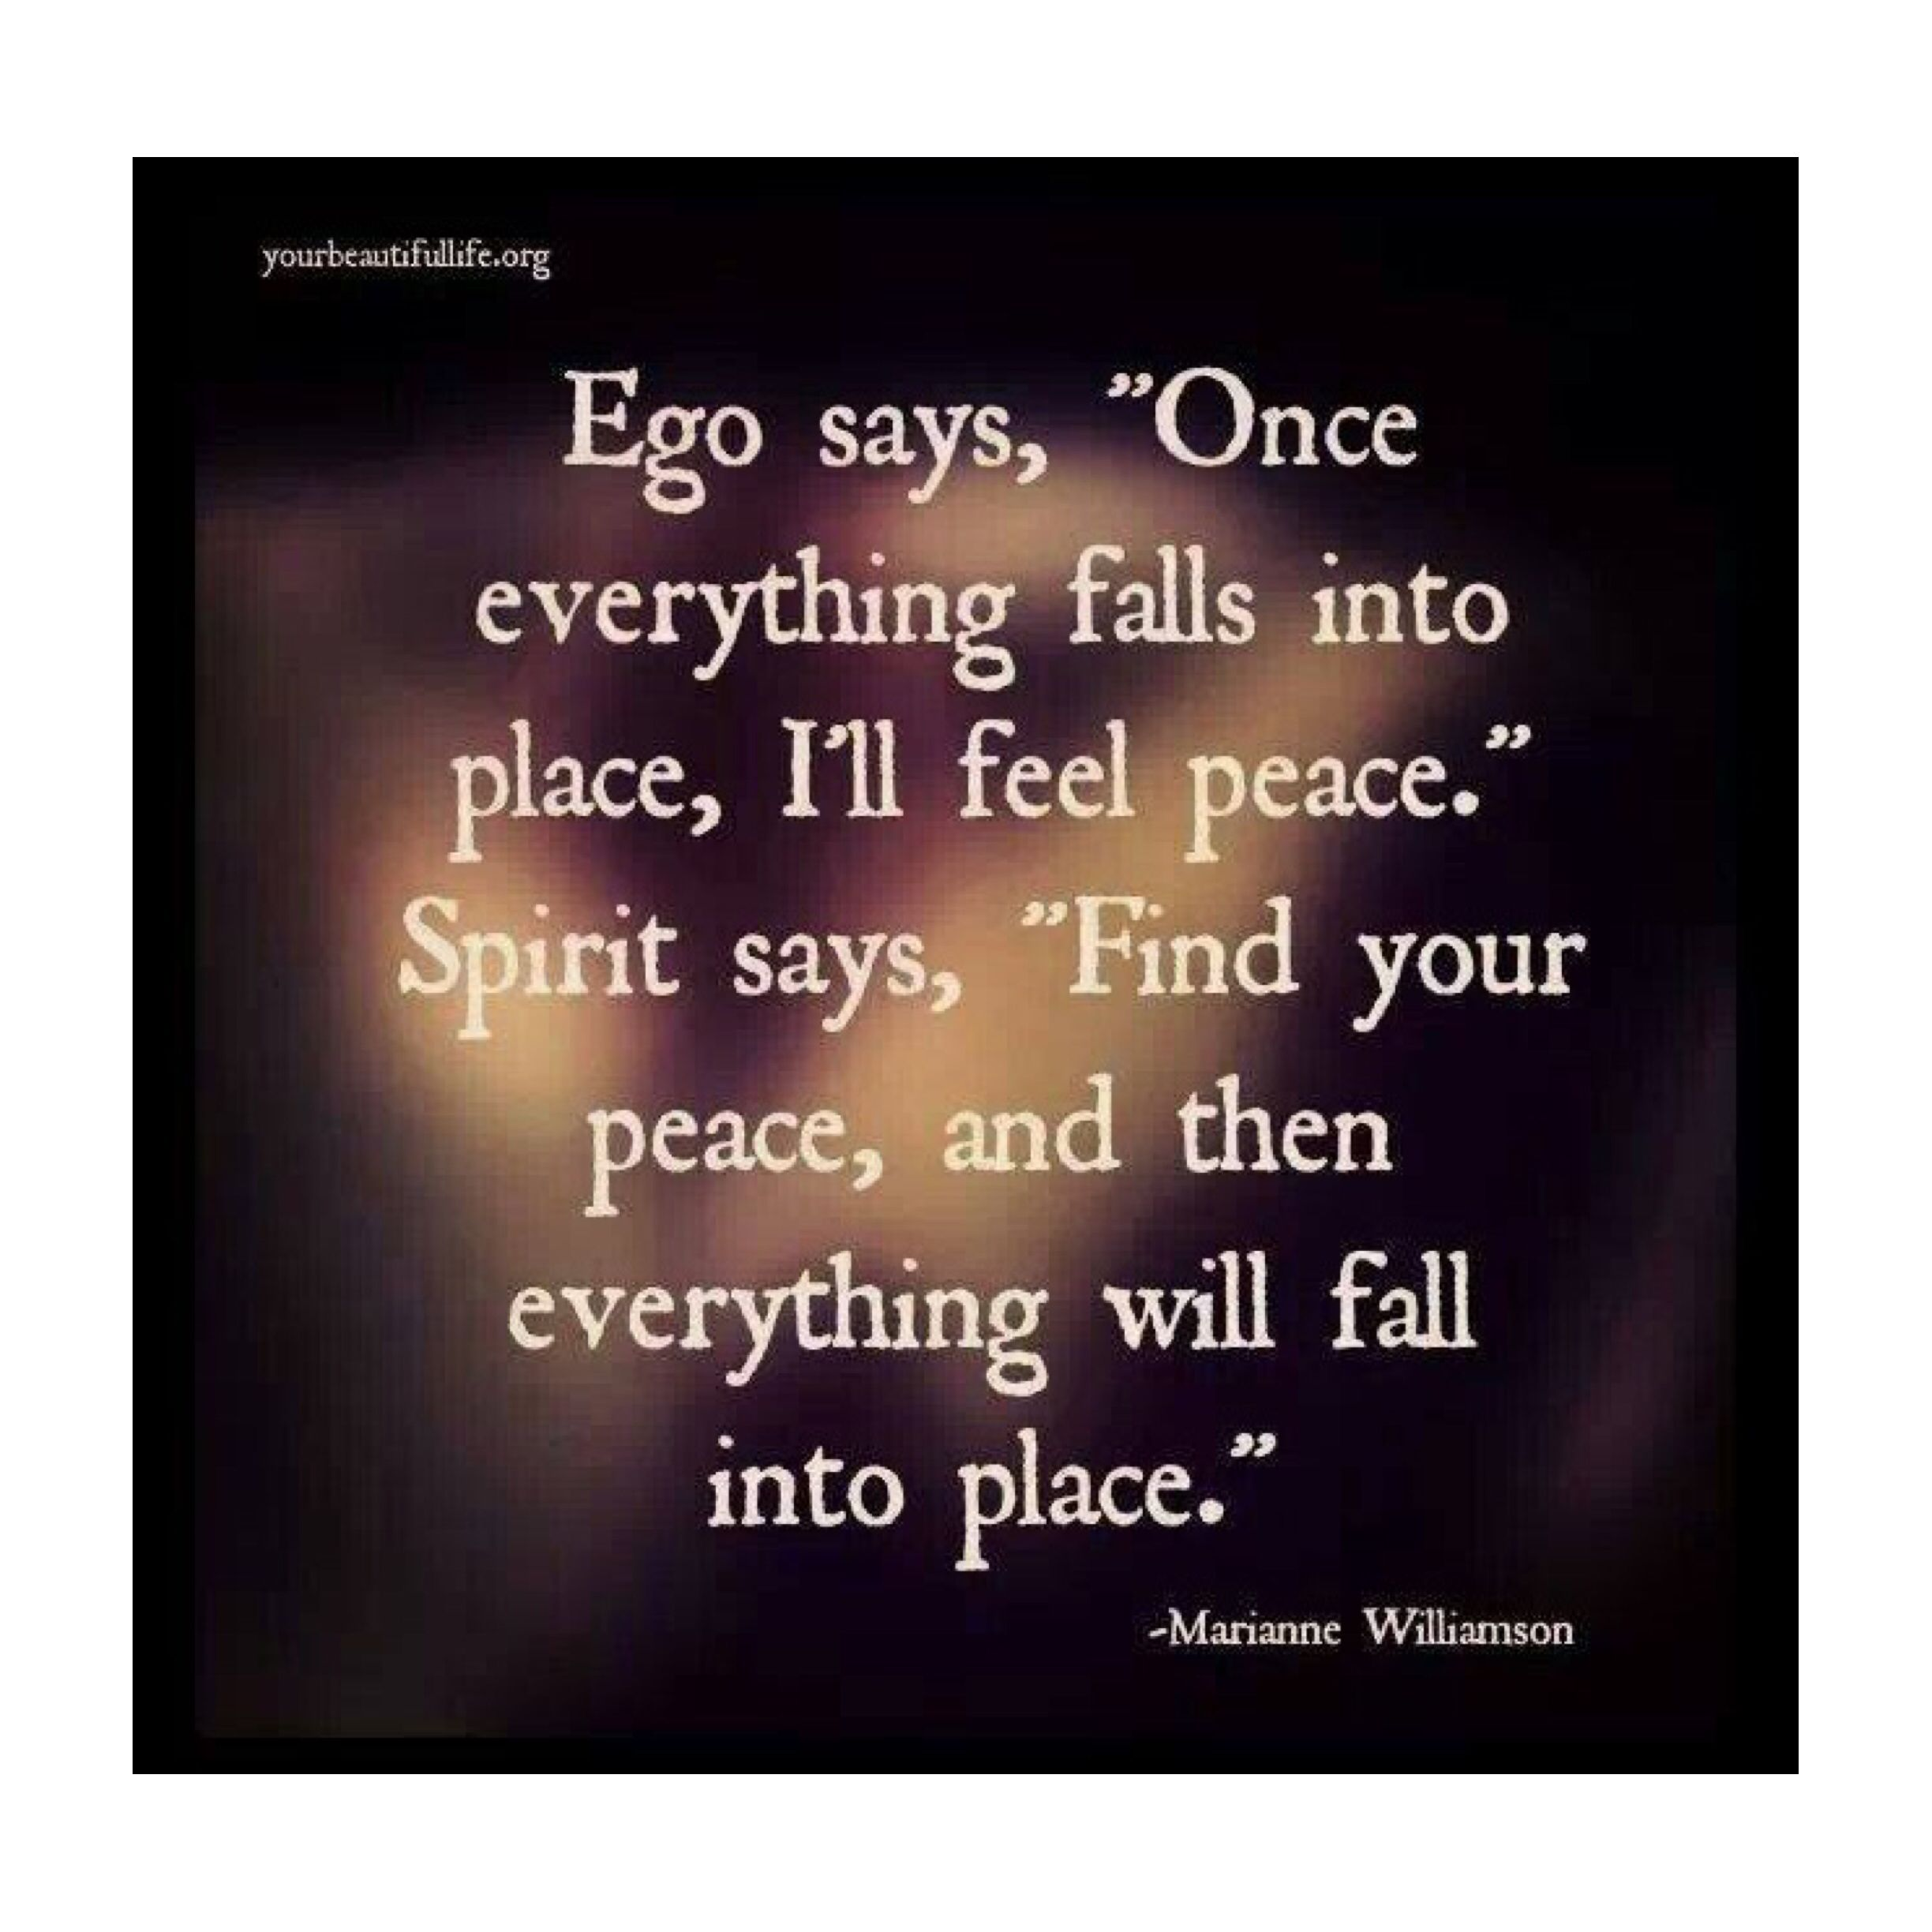 Marianne Williamson Love Quotes Spirit Over Ego Made An Impression Pinterest  Thoughts